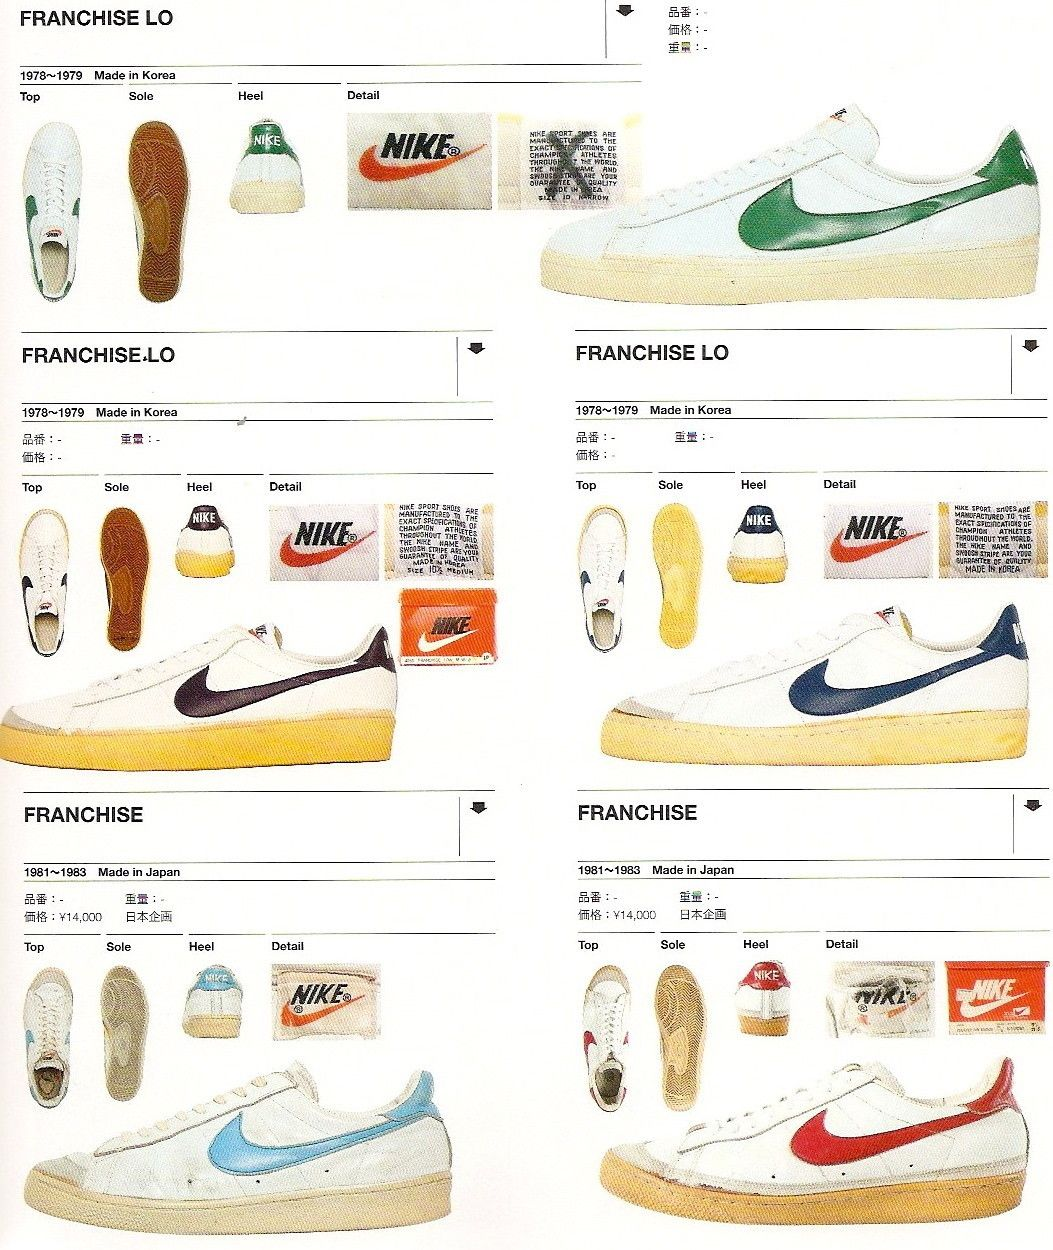 Fng Classics Nike Franchise Franchise Lo Catalogue Circa Retro Sneakers Vintage Sneakers Vintage Nike